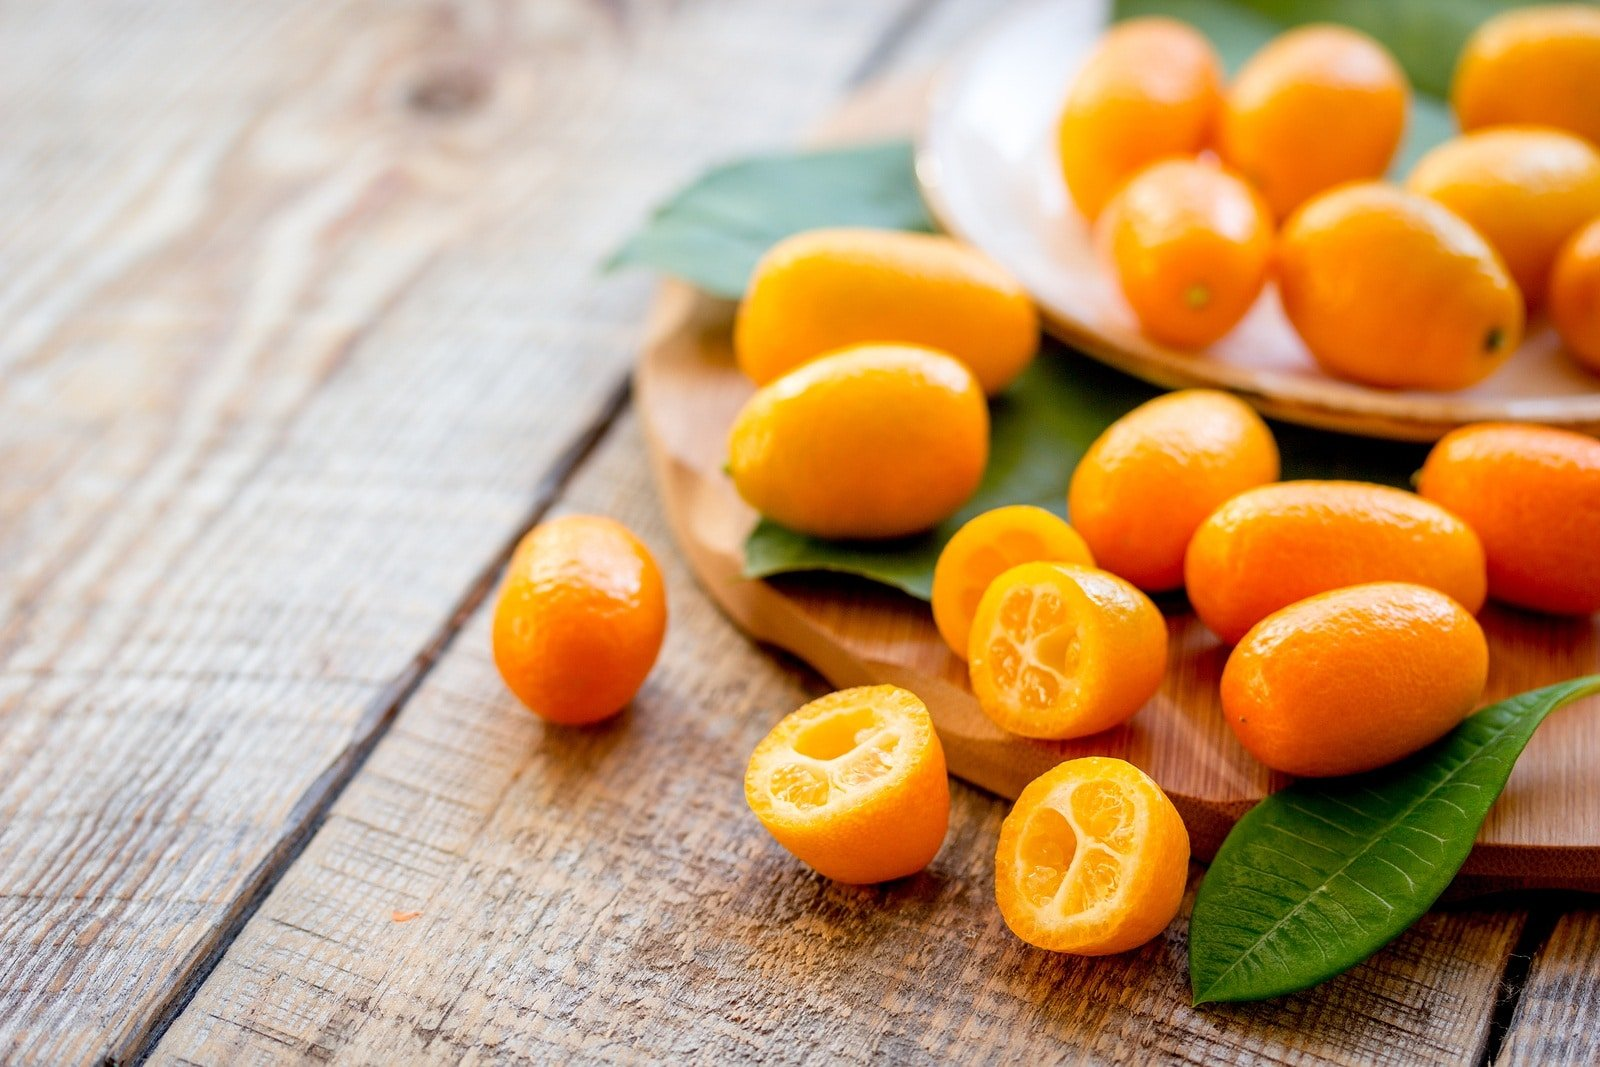 Kumquats are auspicious Asian fruits used as decor for Chinese New Year.